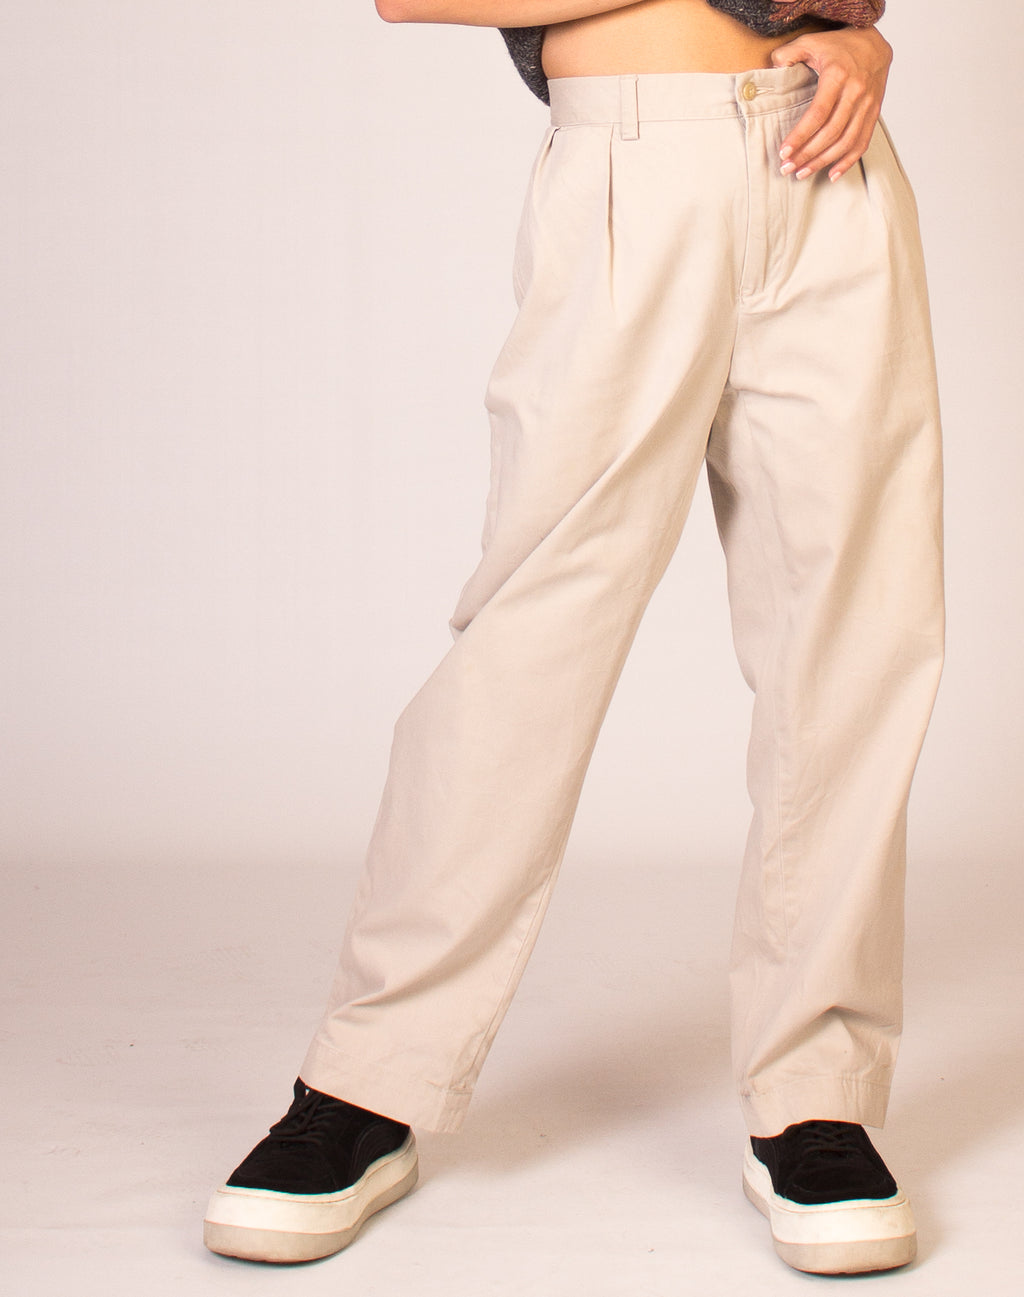 RALPH LAUREN STRAIGHT LEG BEIGE TROUSERS